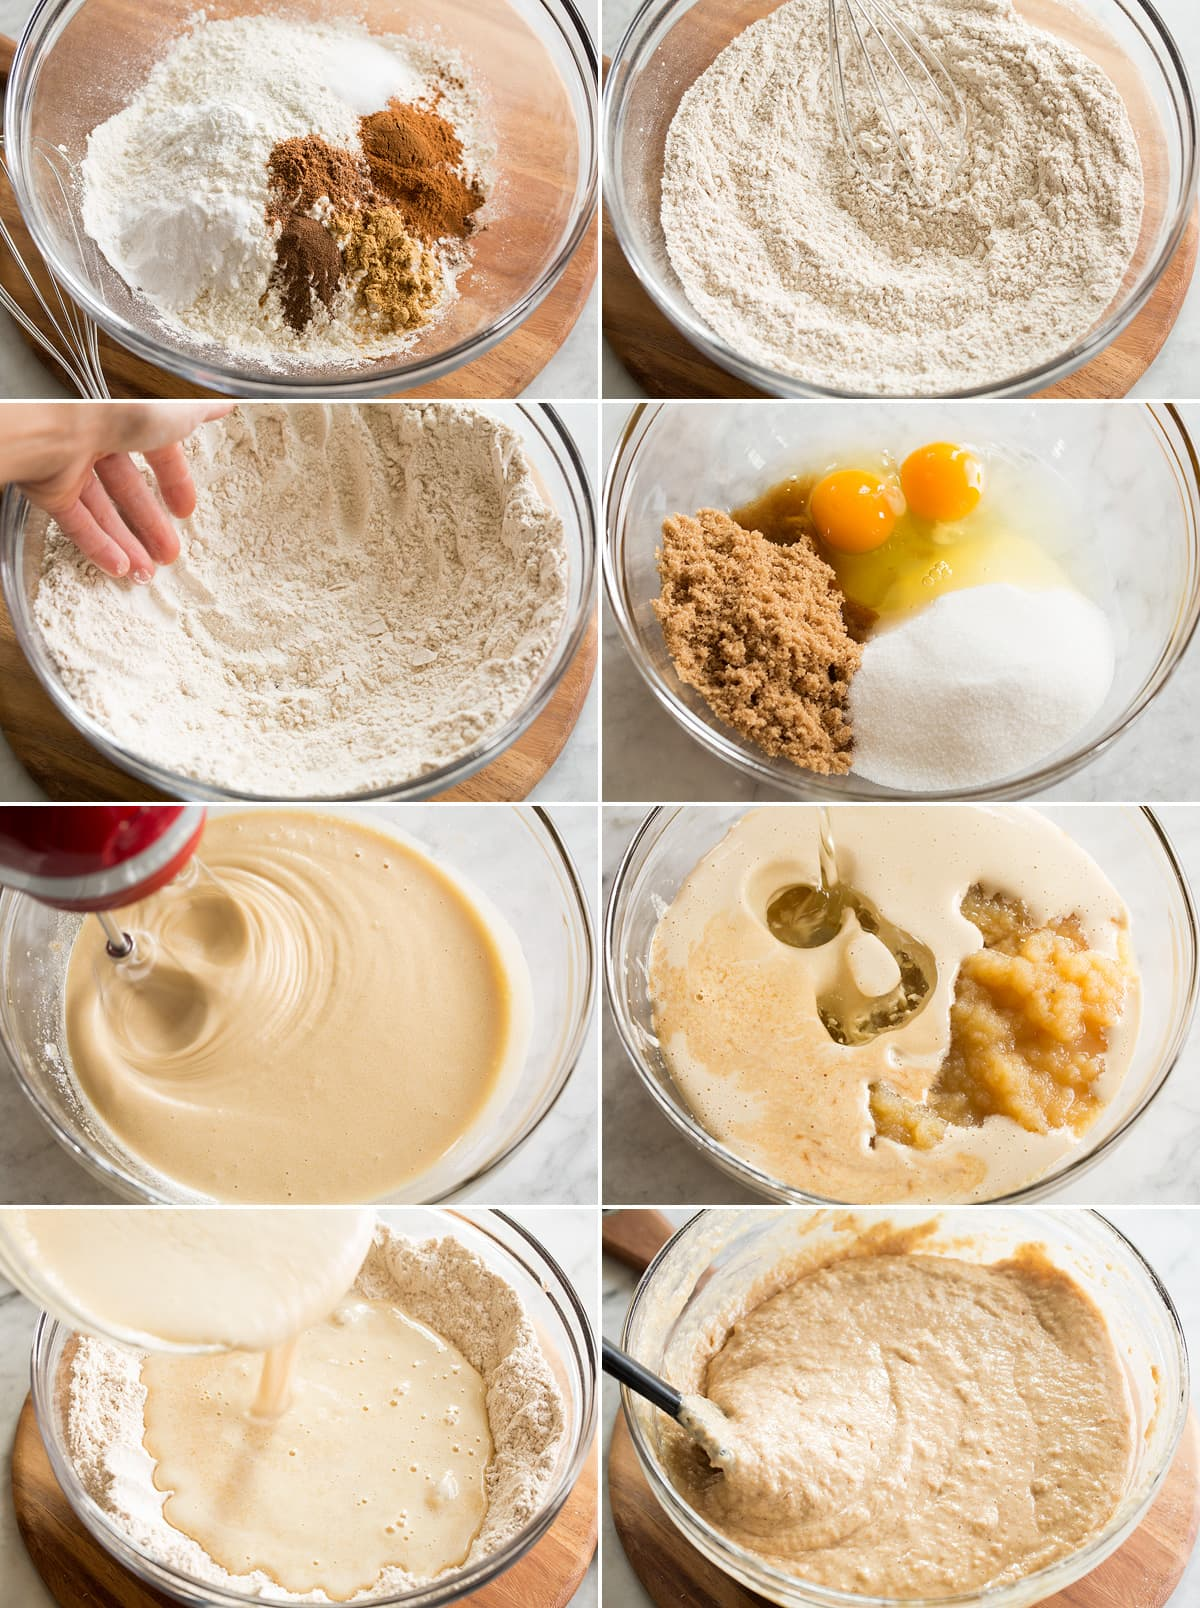 Collage of eight photos showing steps of making applesauce cake batter in mixing bowls.